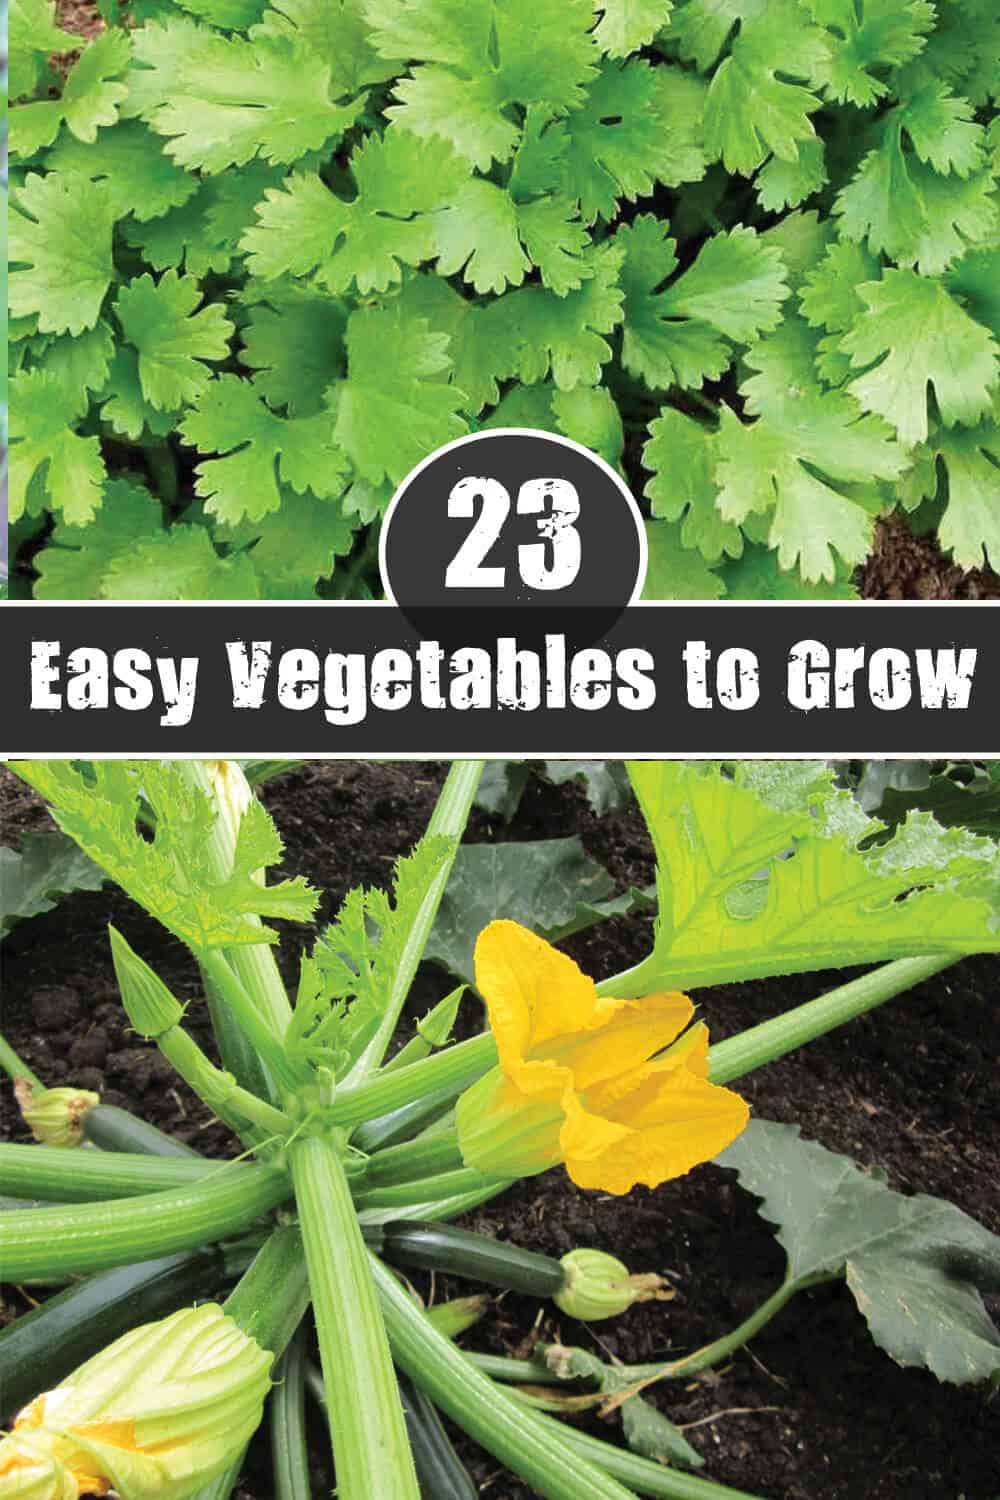 Tasty Vegetables That Are Easy to Grow for Beginners